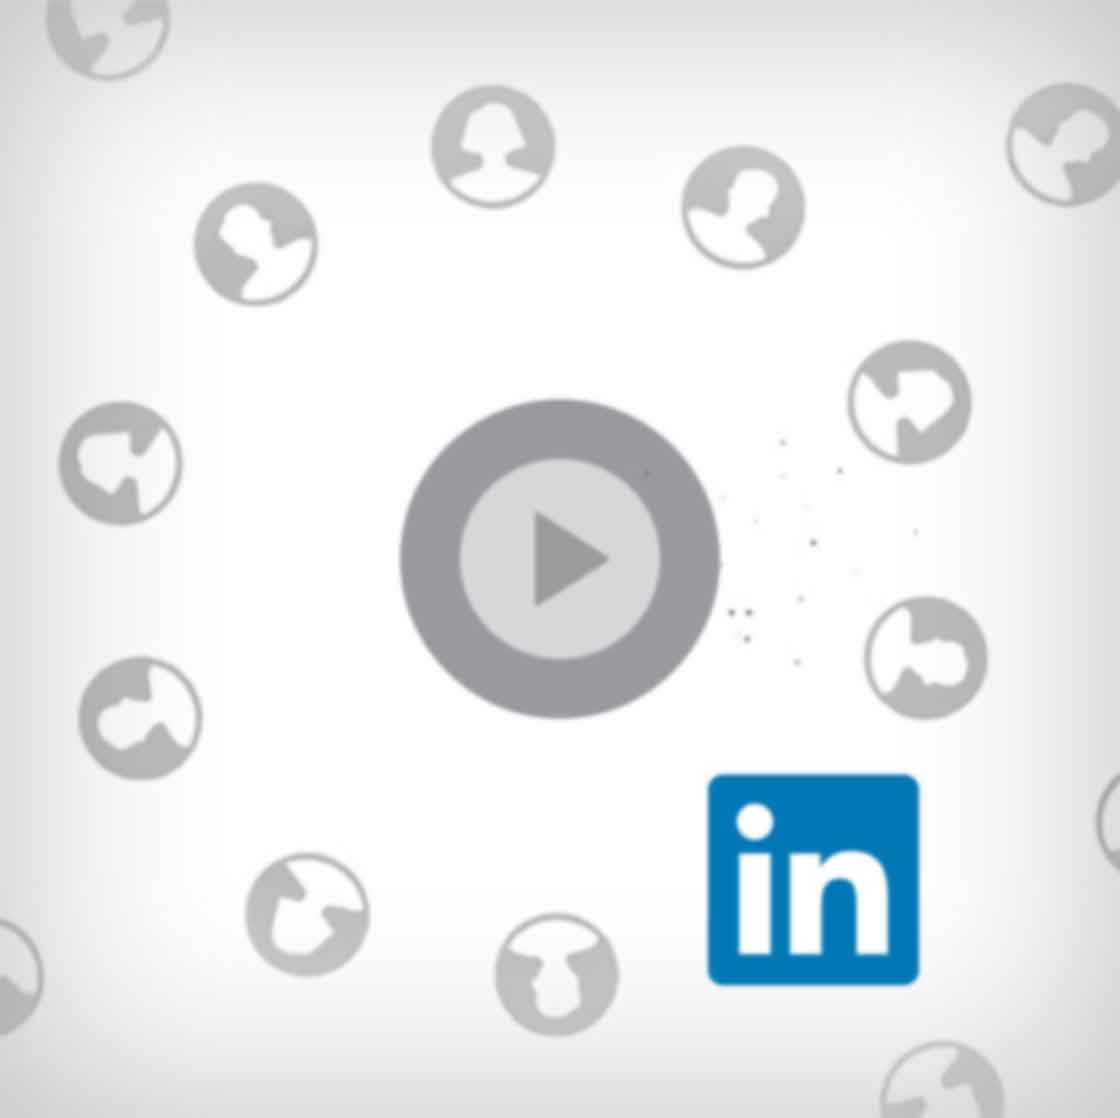 Marketing, corporate communications, and PR campaigns for Linkedin